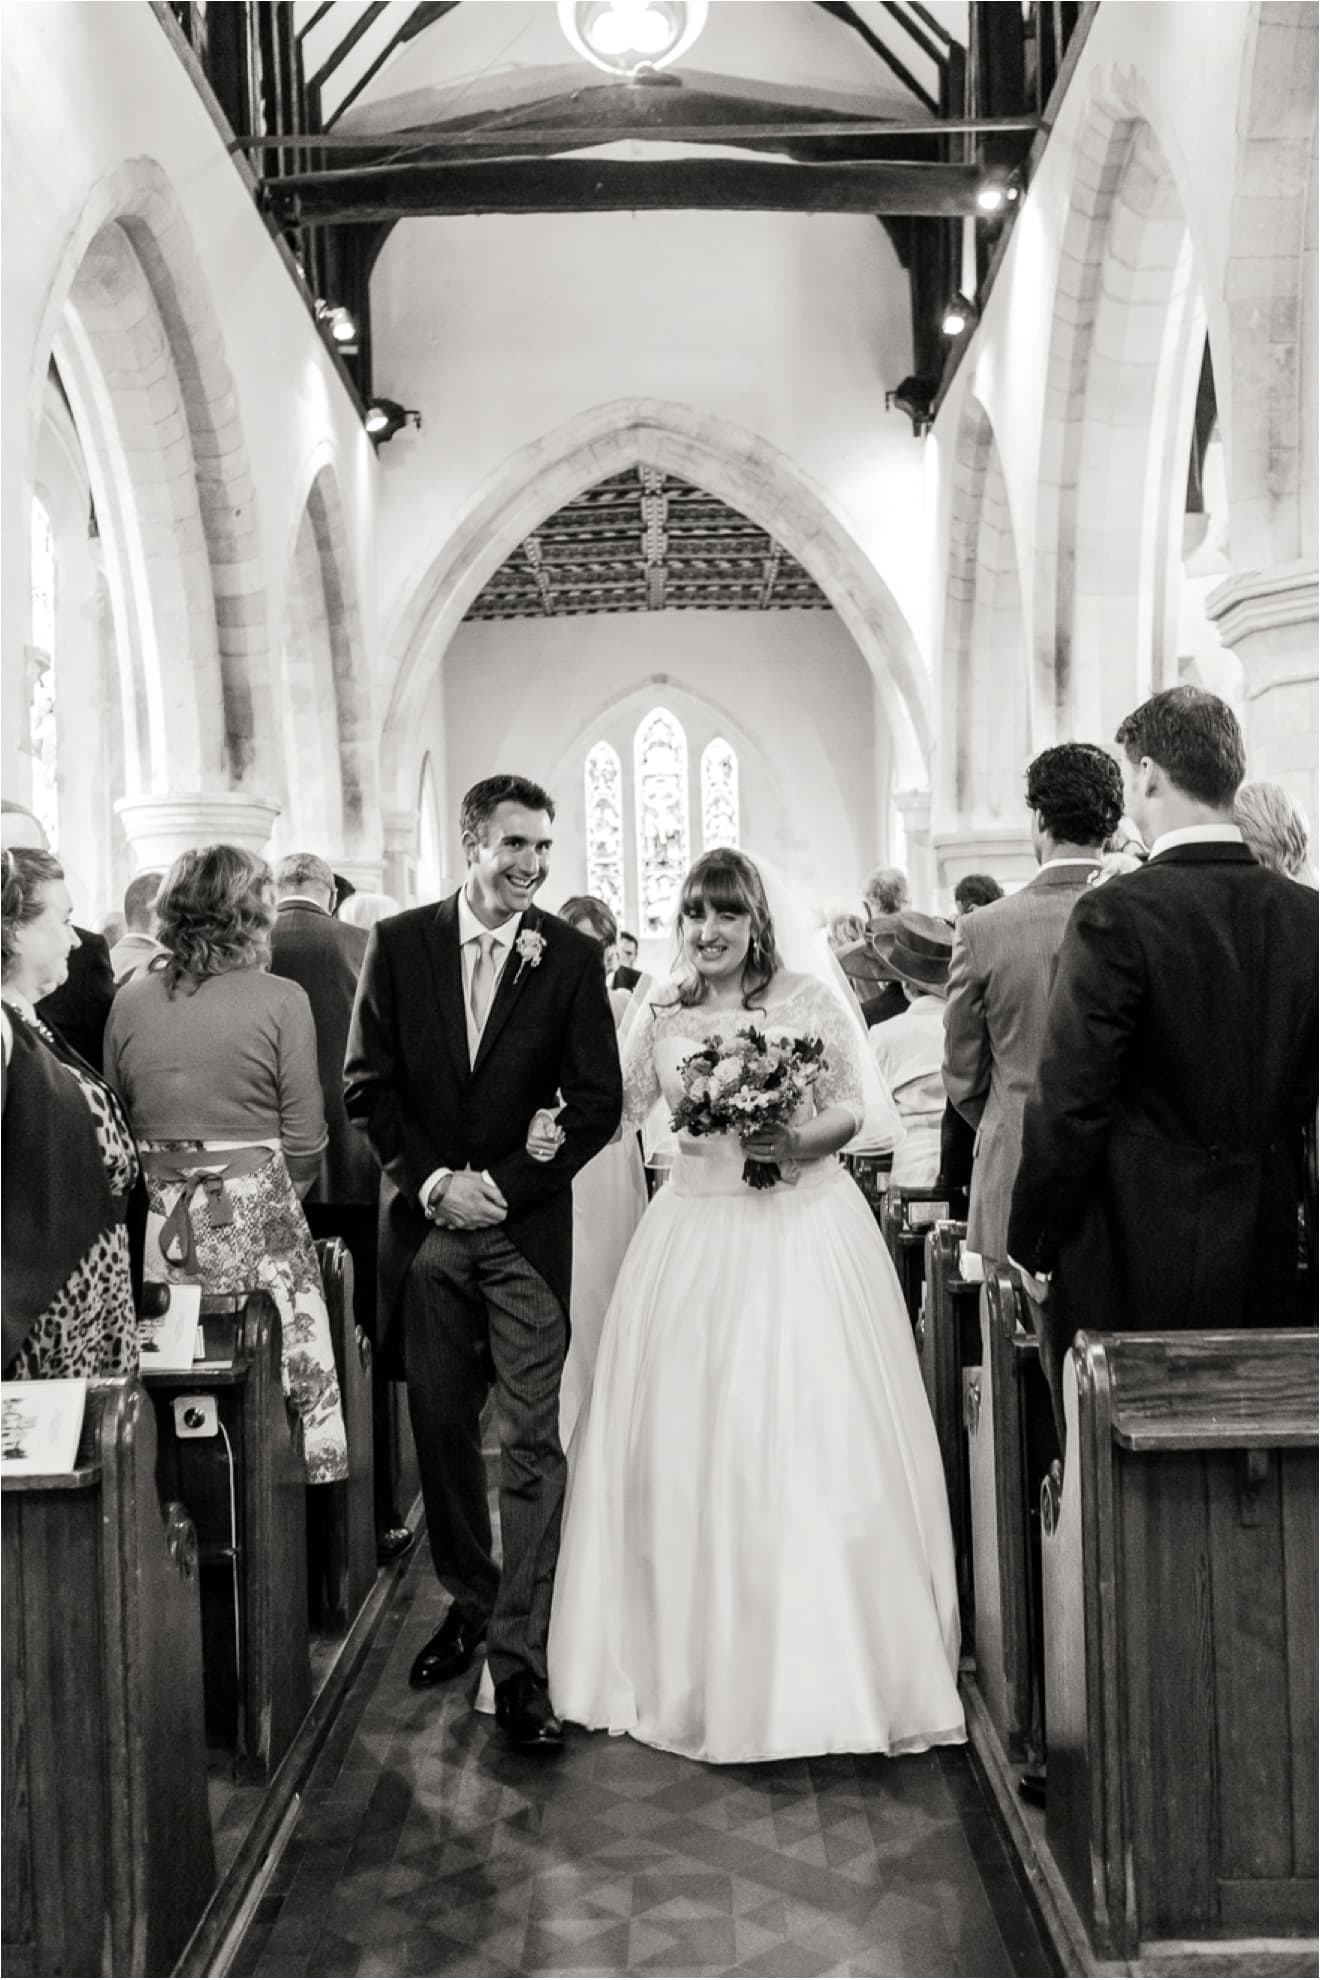 wedding-at-hambledon-vineyard-eddie-judd-photographer0055